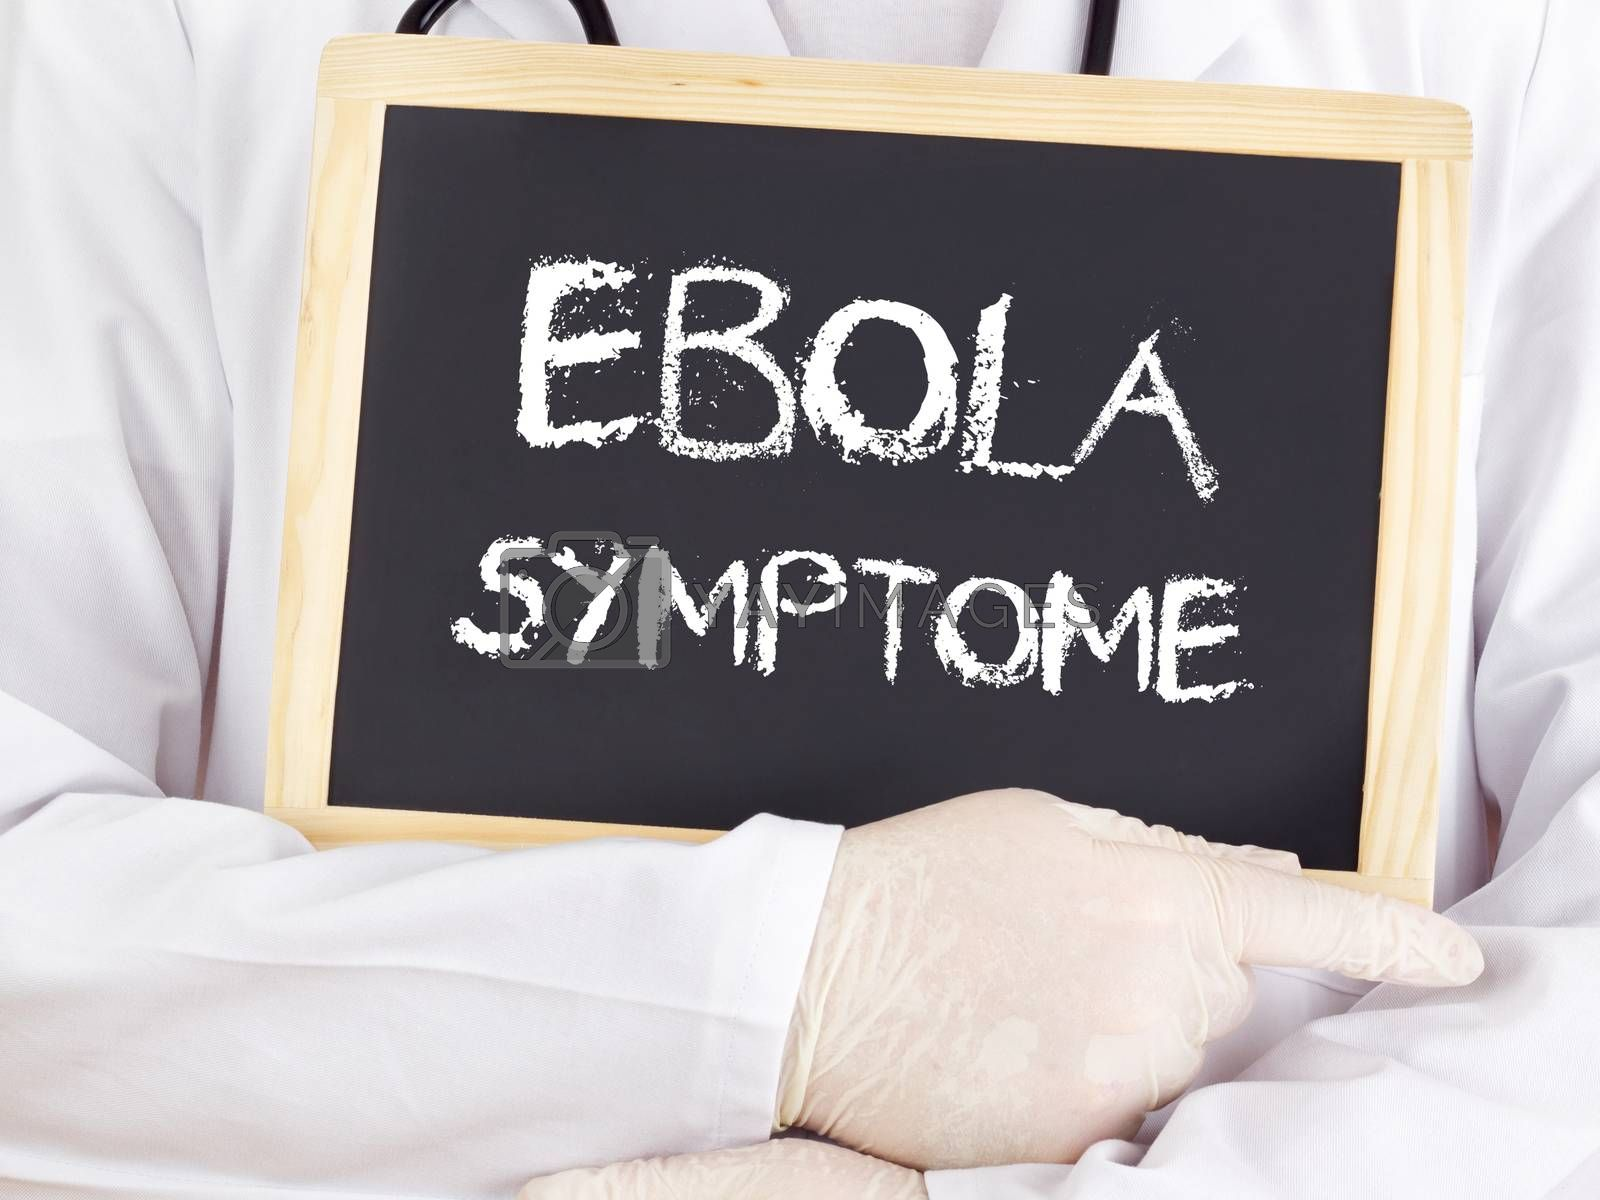 Royalty free image of Doctor shows information: Ebola symptoms in german by gwolters